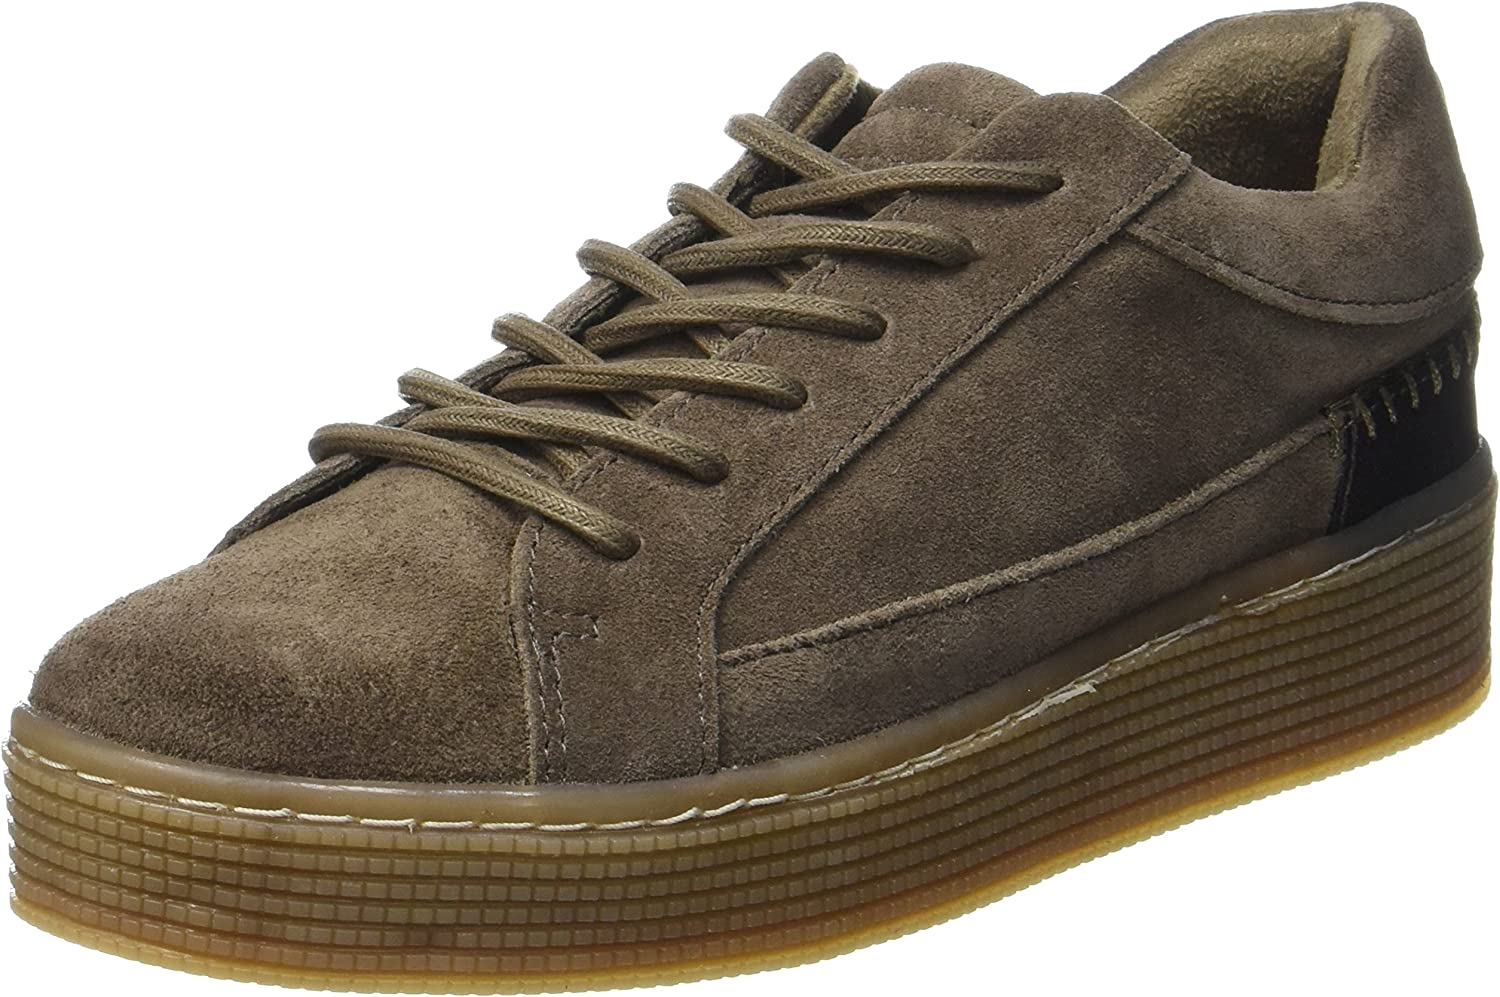 Dockers by Gerli 41ab208-206430, Women's Hi-Top Trainers